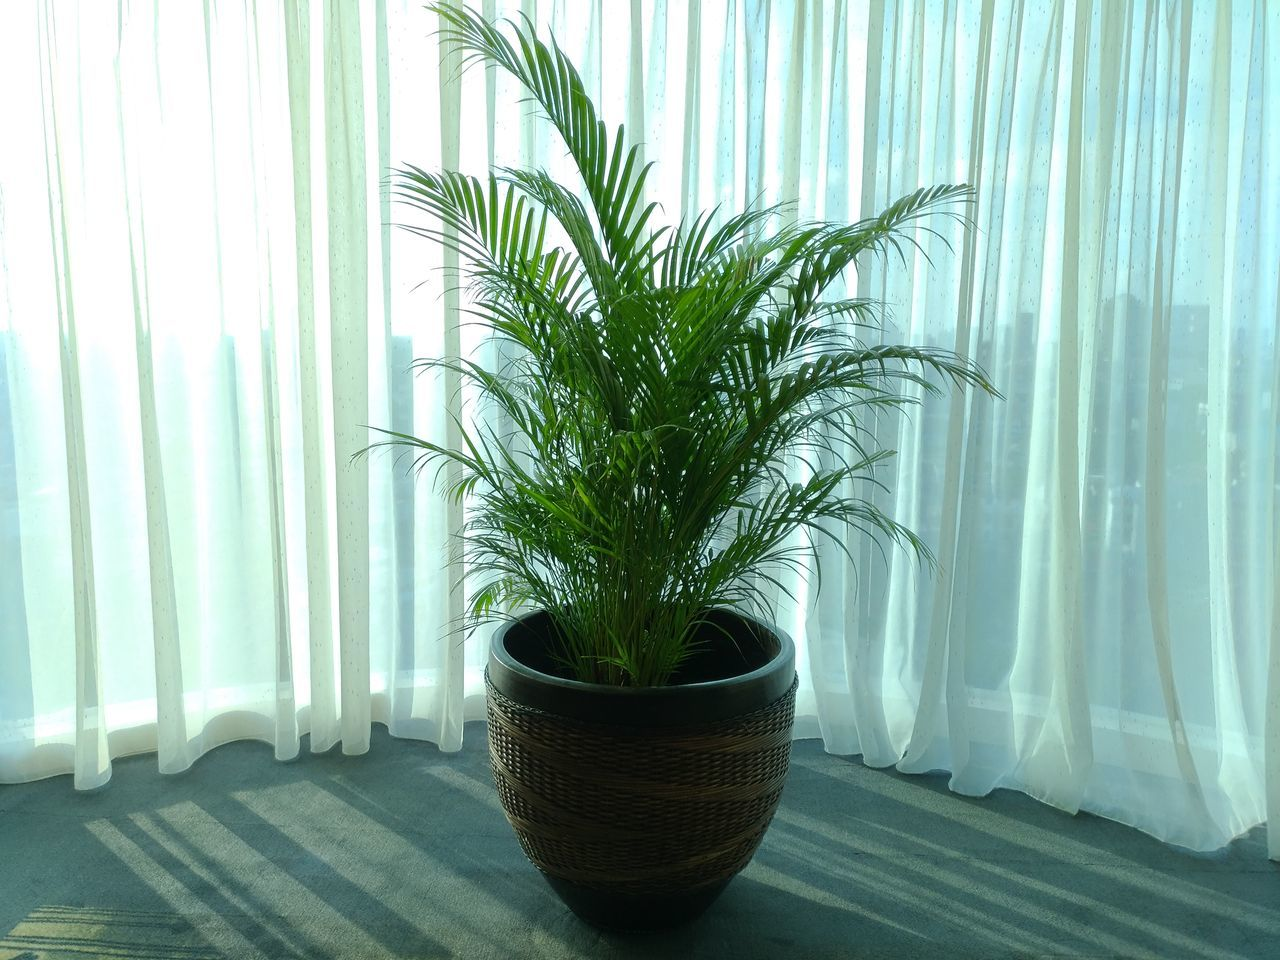 Growth Plant Potted Plant Curtain Indoors  Nature No People Day Tree